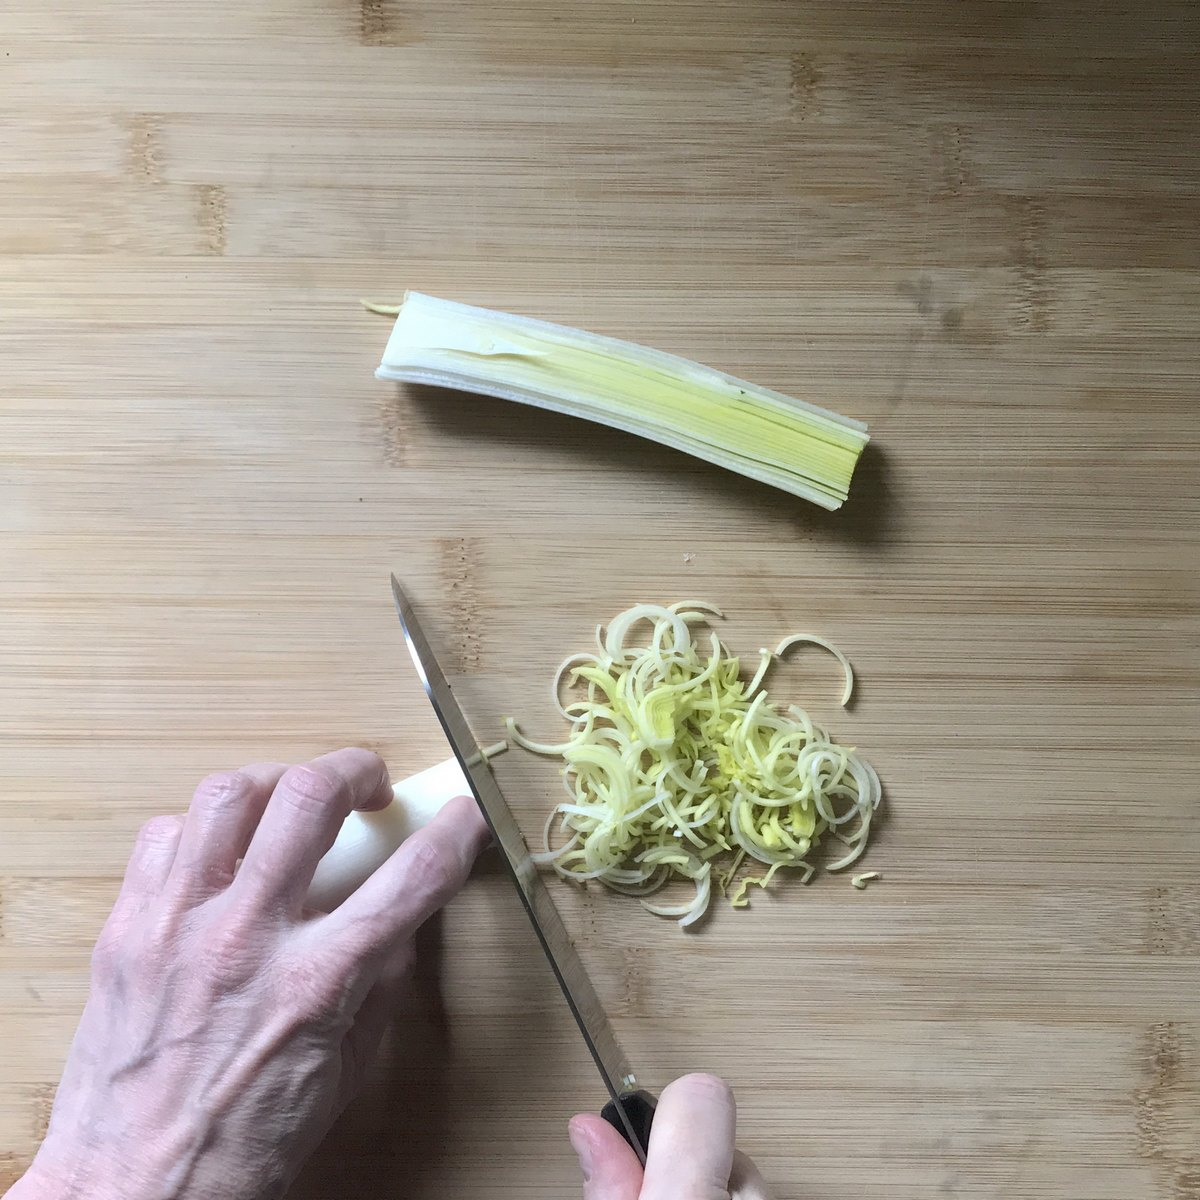 The white part of one leek in teh process of being chopped.